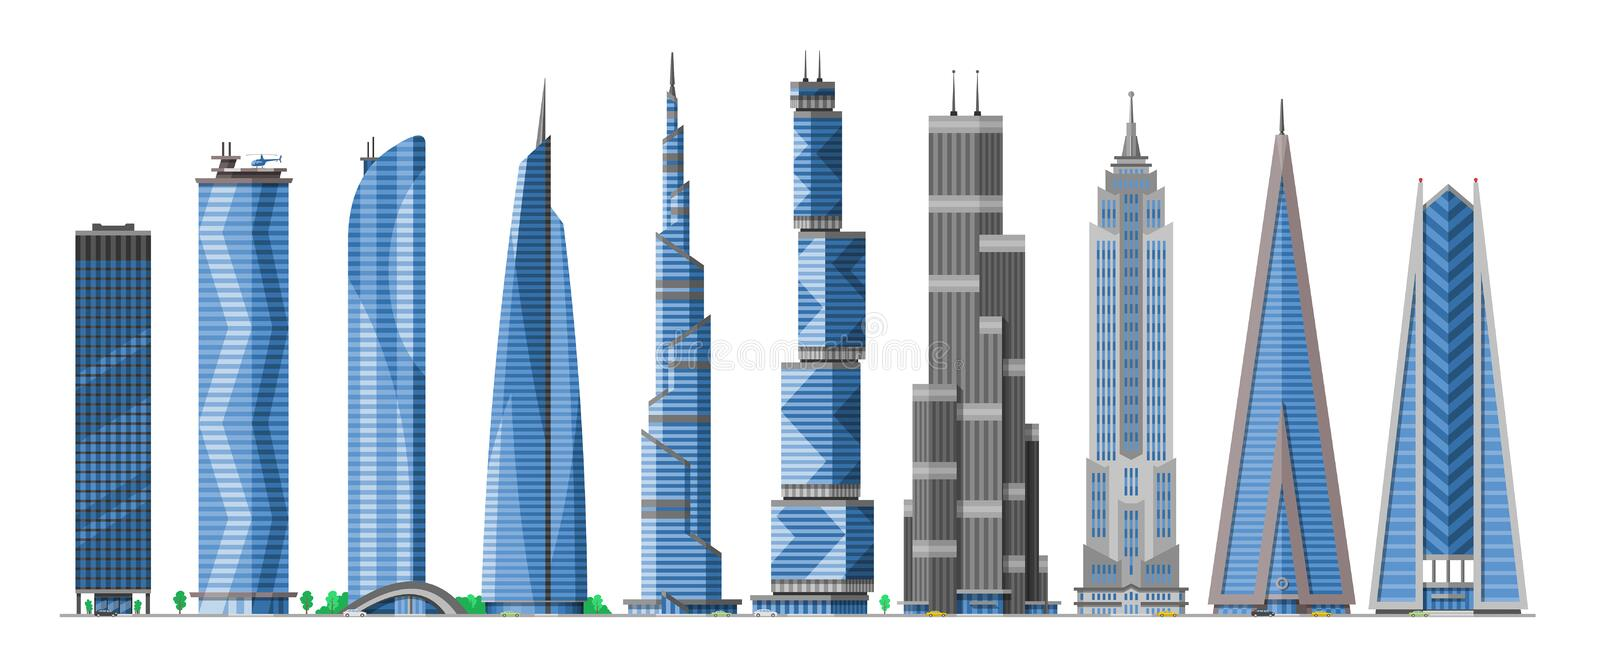 Building skyscraper in cityscape vector city skyline and business officebuilding of commercial company and build royalty free illustration